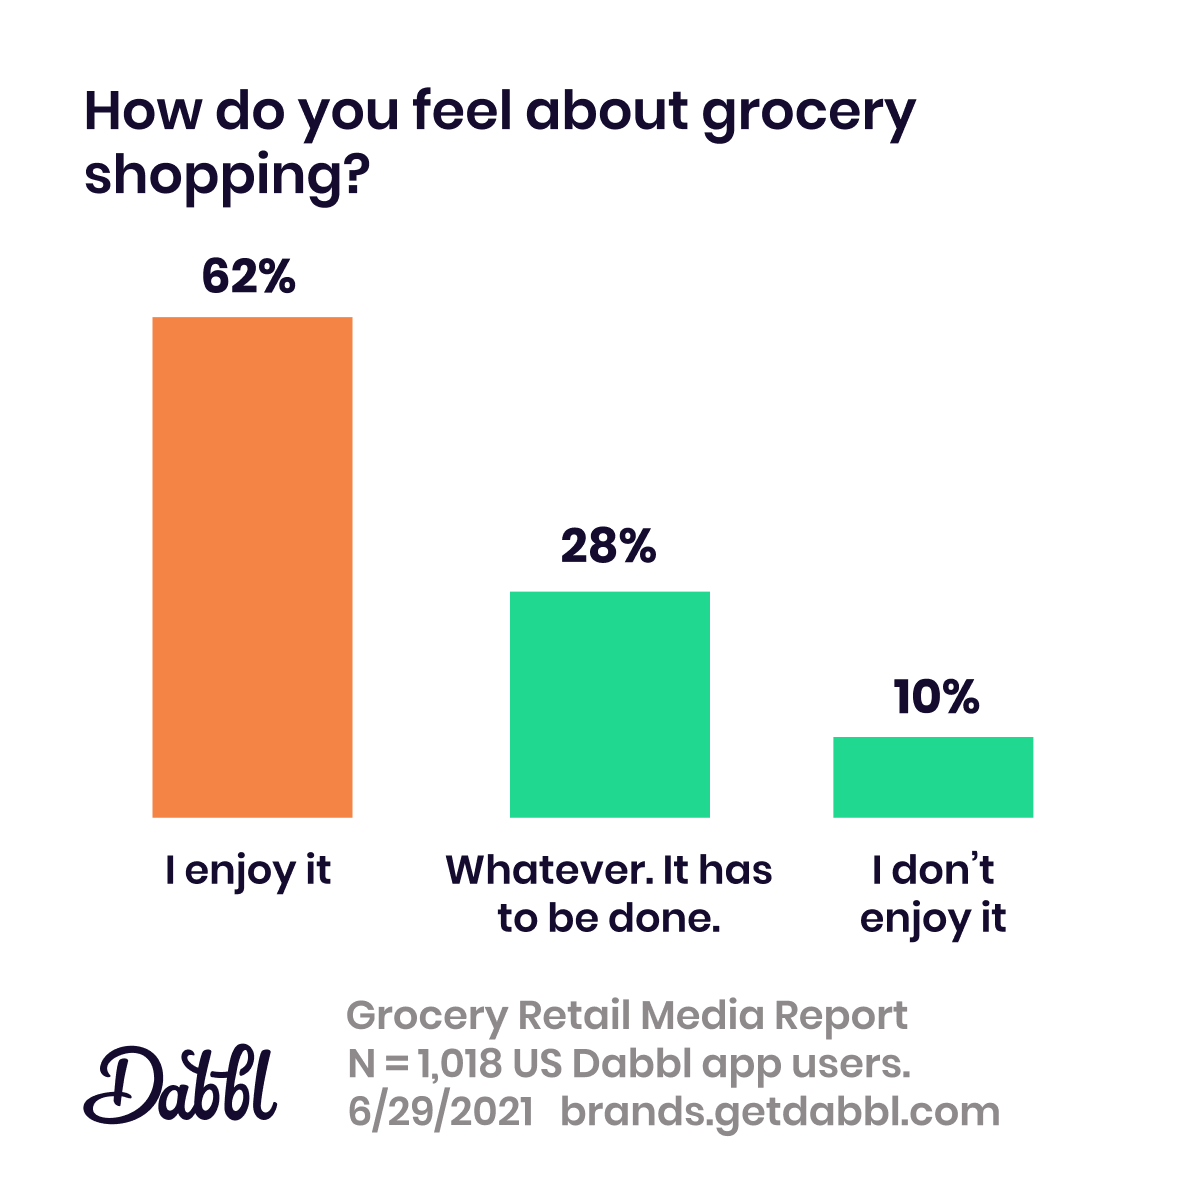 Dabbl Grocery Retail Media Report: grocery shopping sentiment